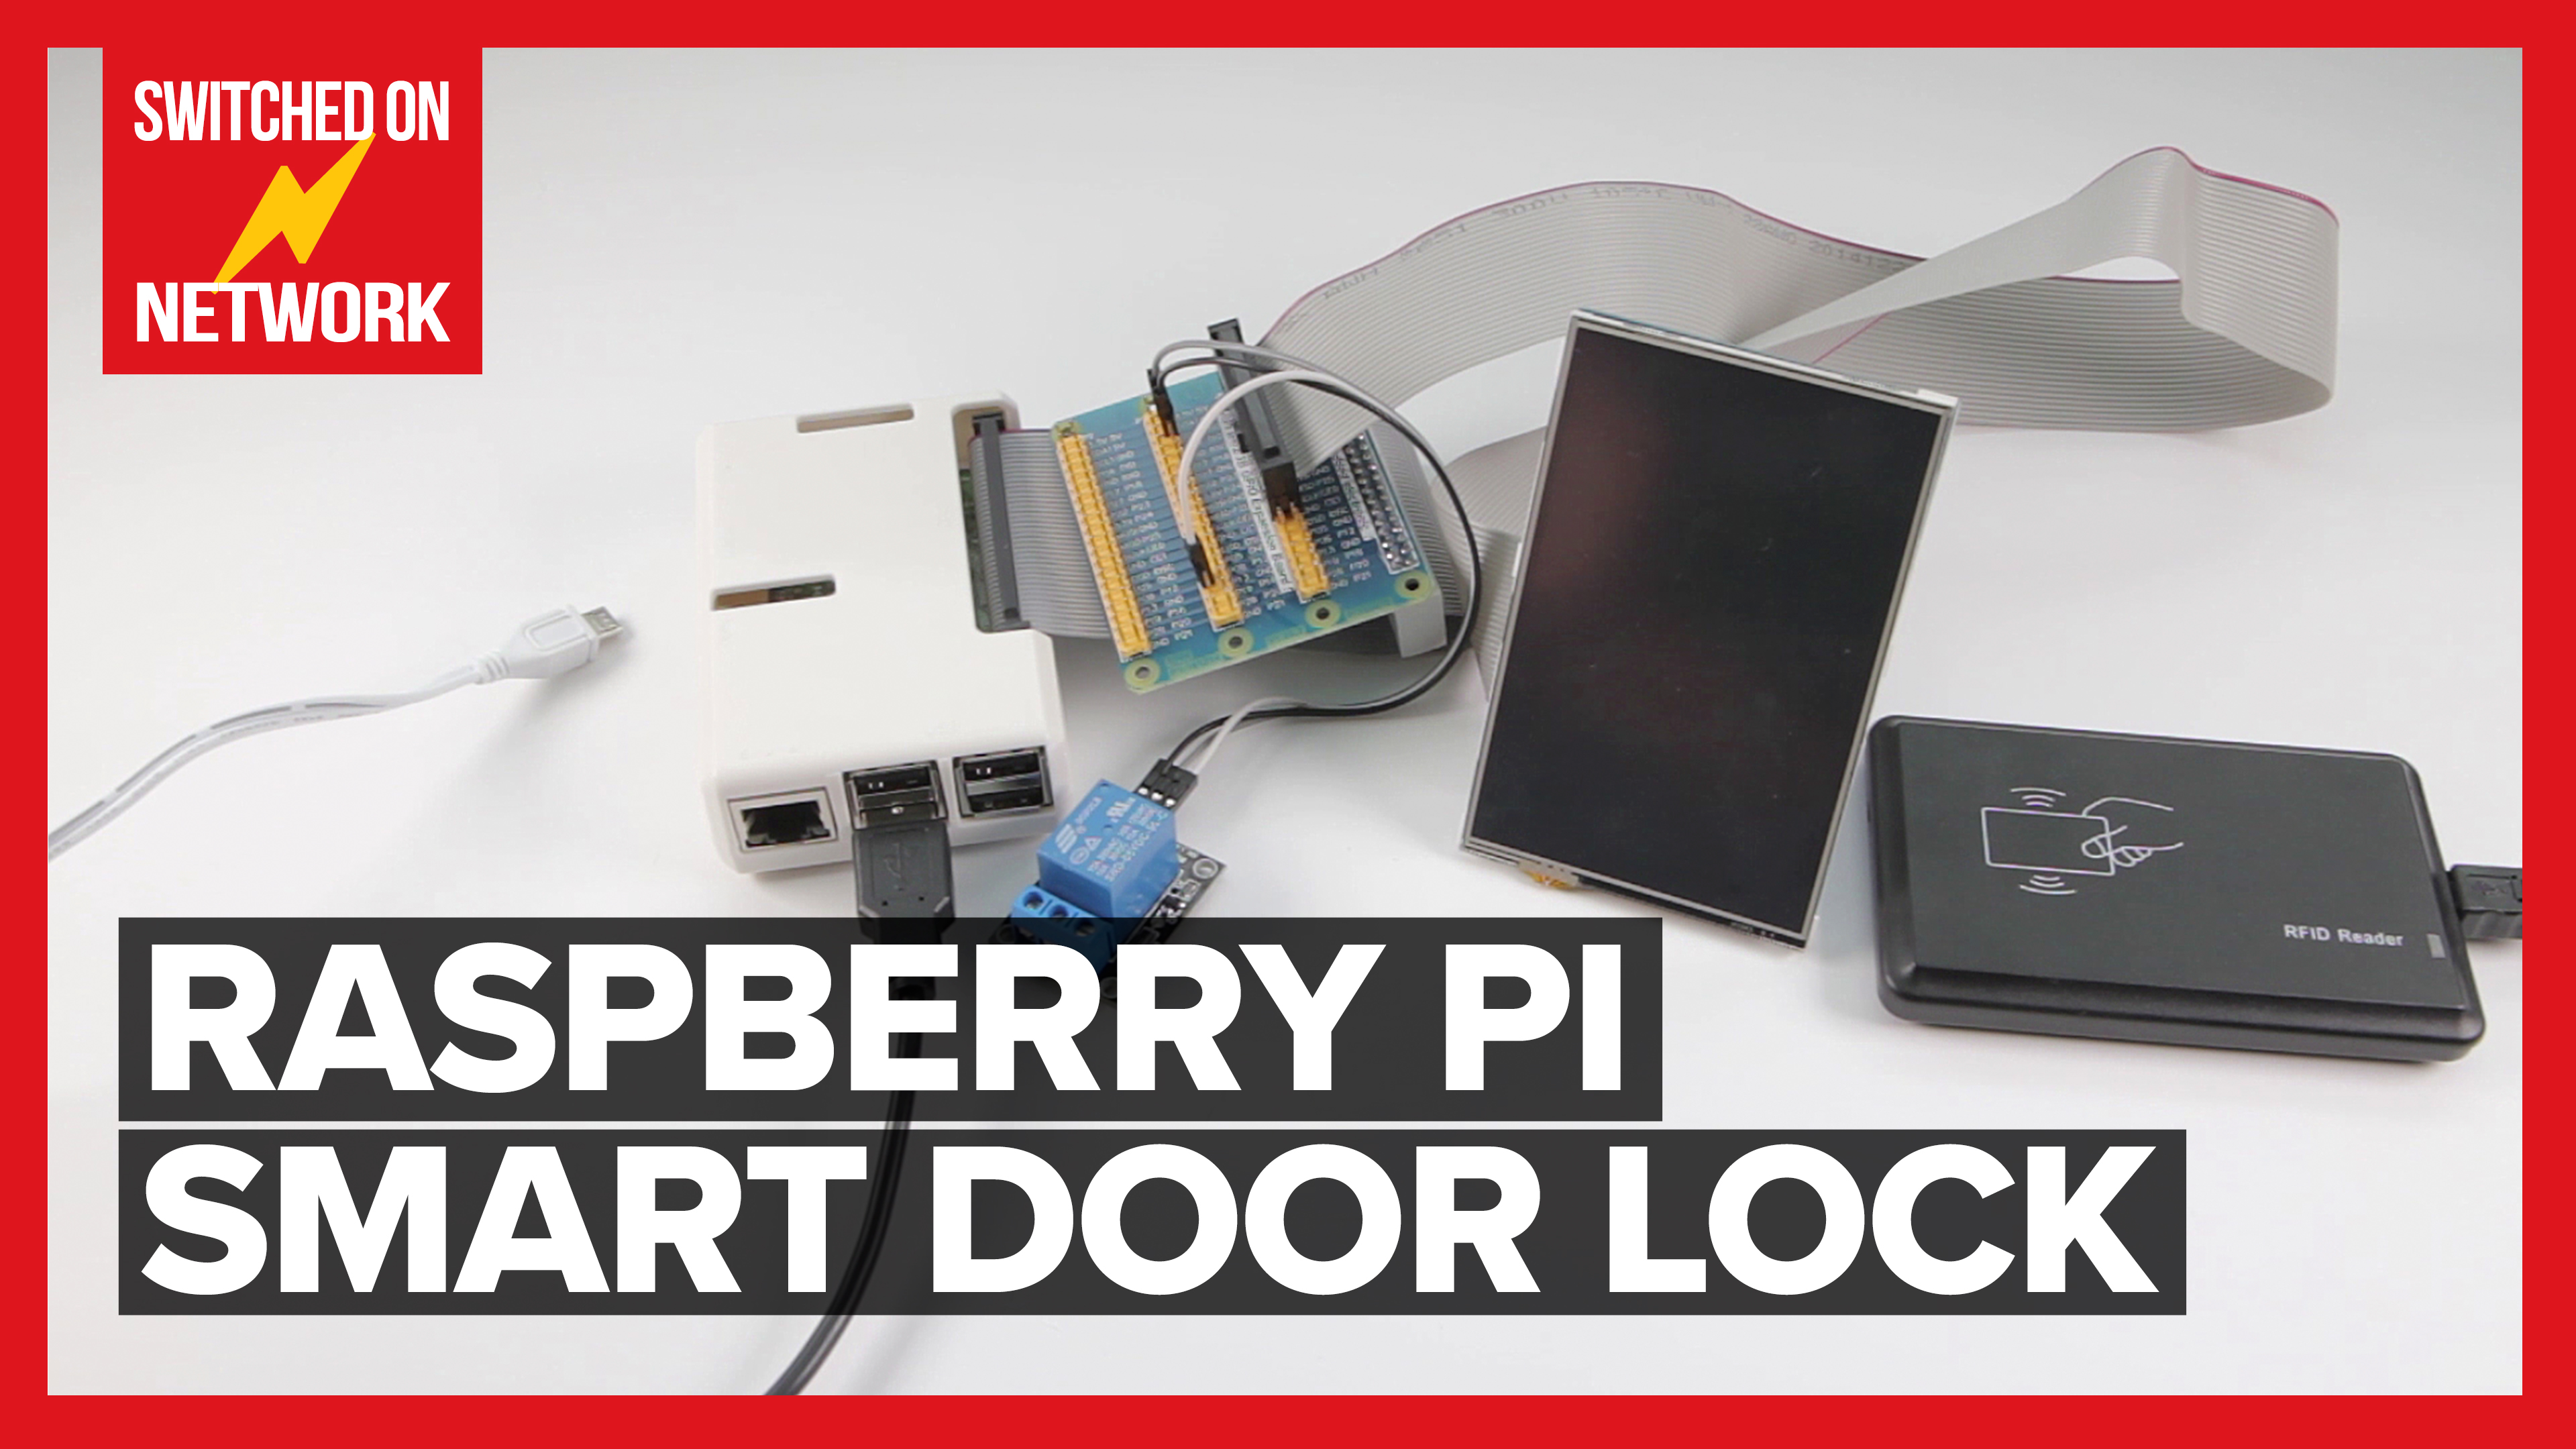 Build a Raspberry Pi Smart Door Lock Security System for your Smart